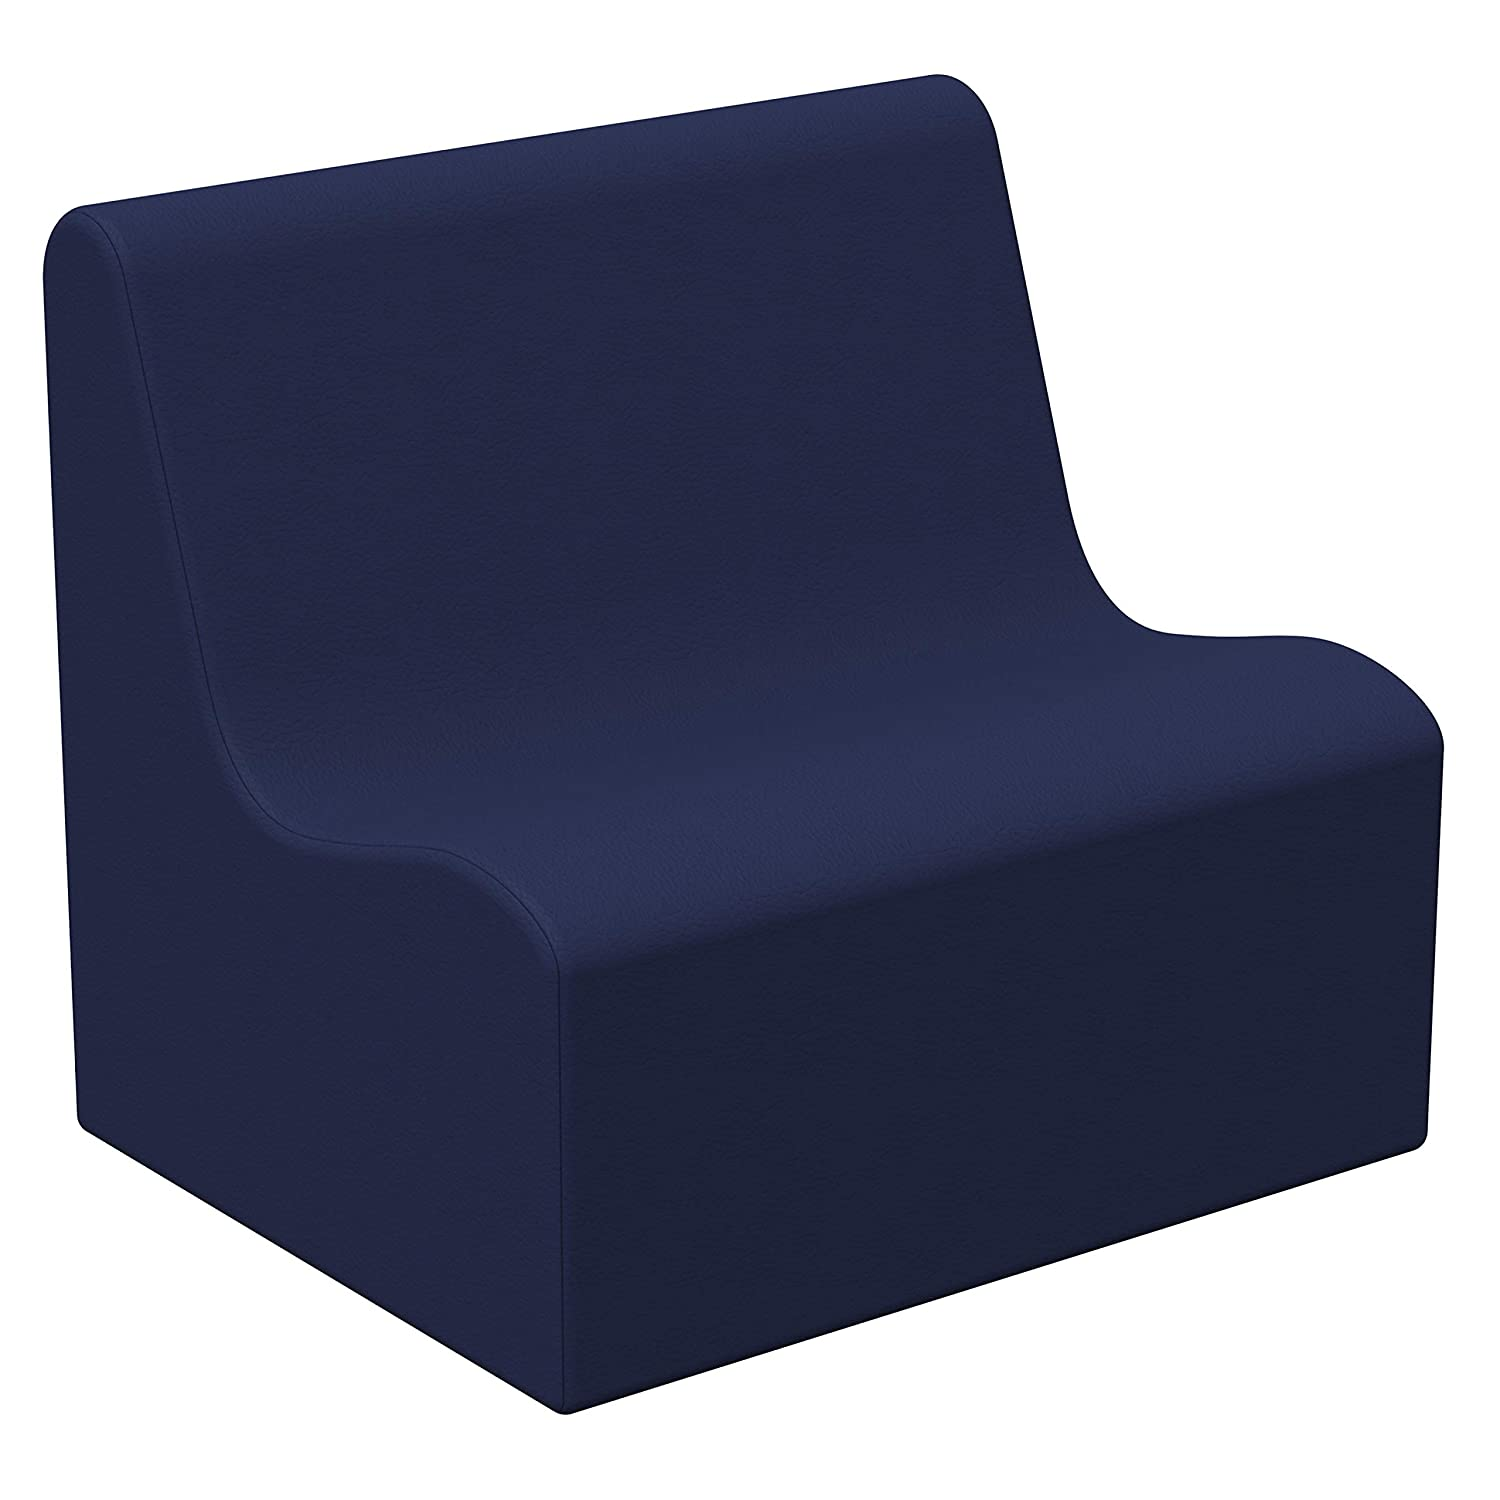 FDP SoftScape Wave Preschool Sofa Seating, Play Soft Supportive Foam Furniture for Kids for Bedrooms, Playrooms, Classrooms - Navy